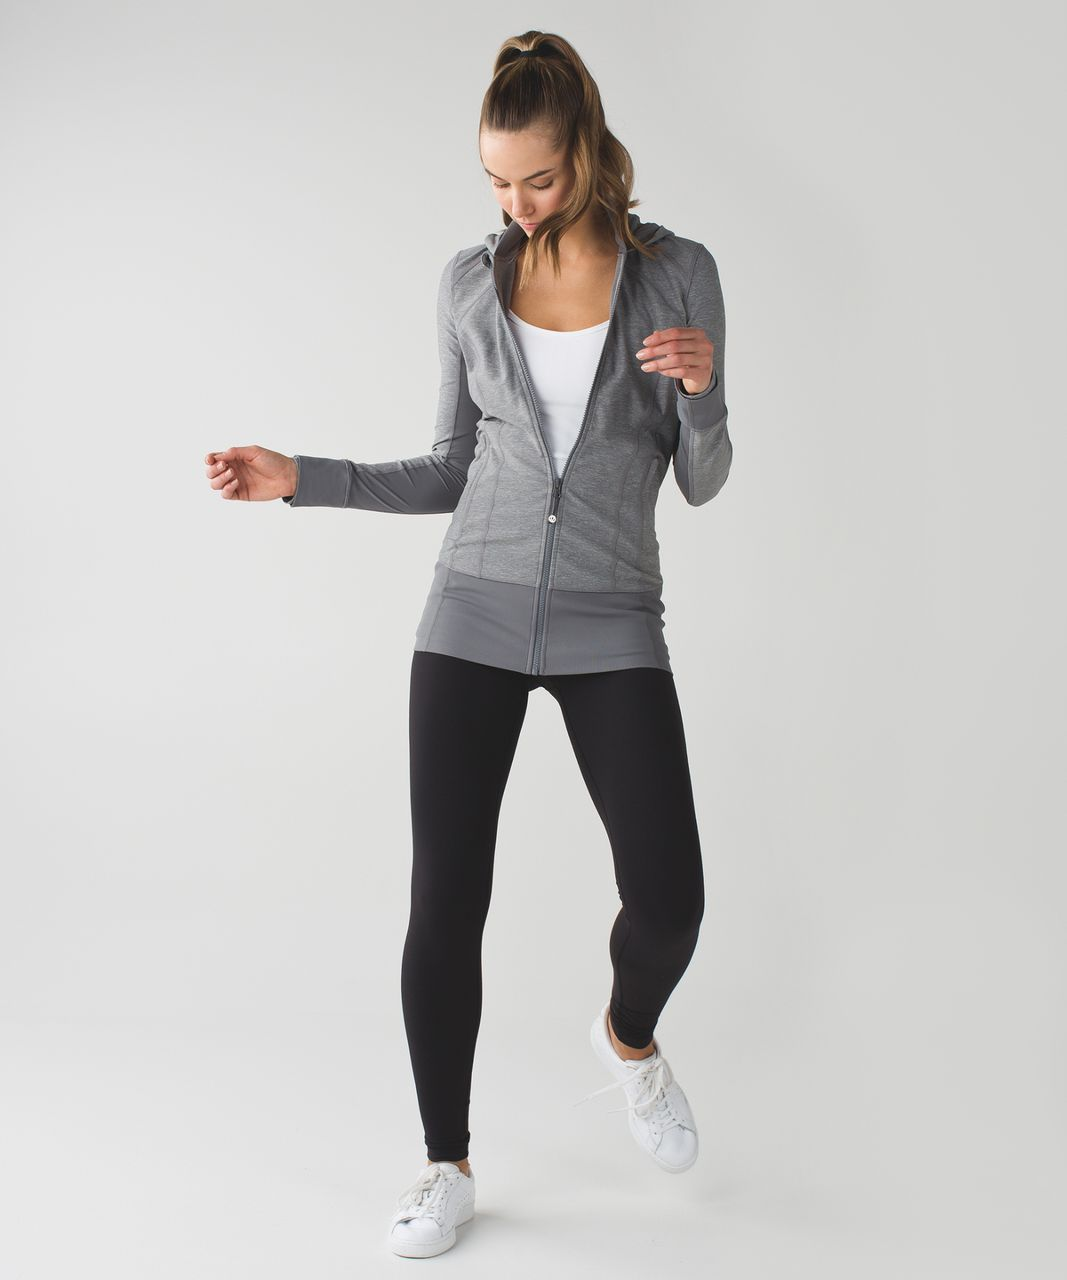 Lululemon Daily Practice Jacket - Heathered Slate / Slate